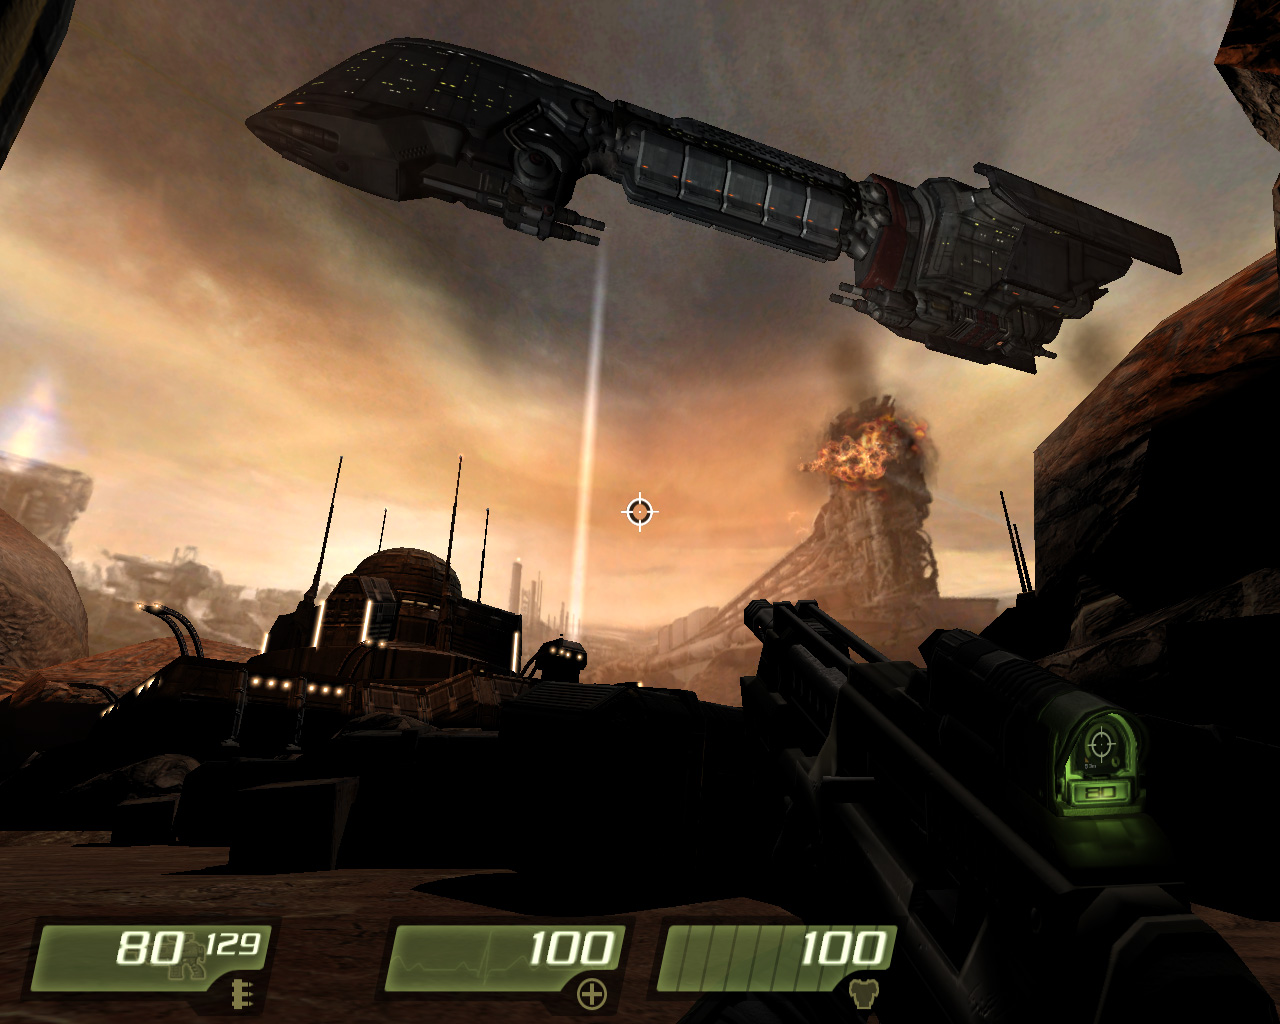 Super Adventures in Gaming: Quake 4 (PC)